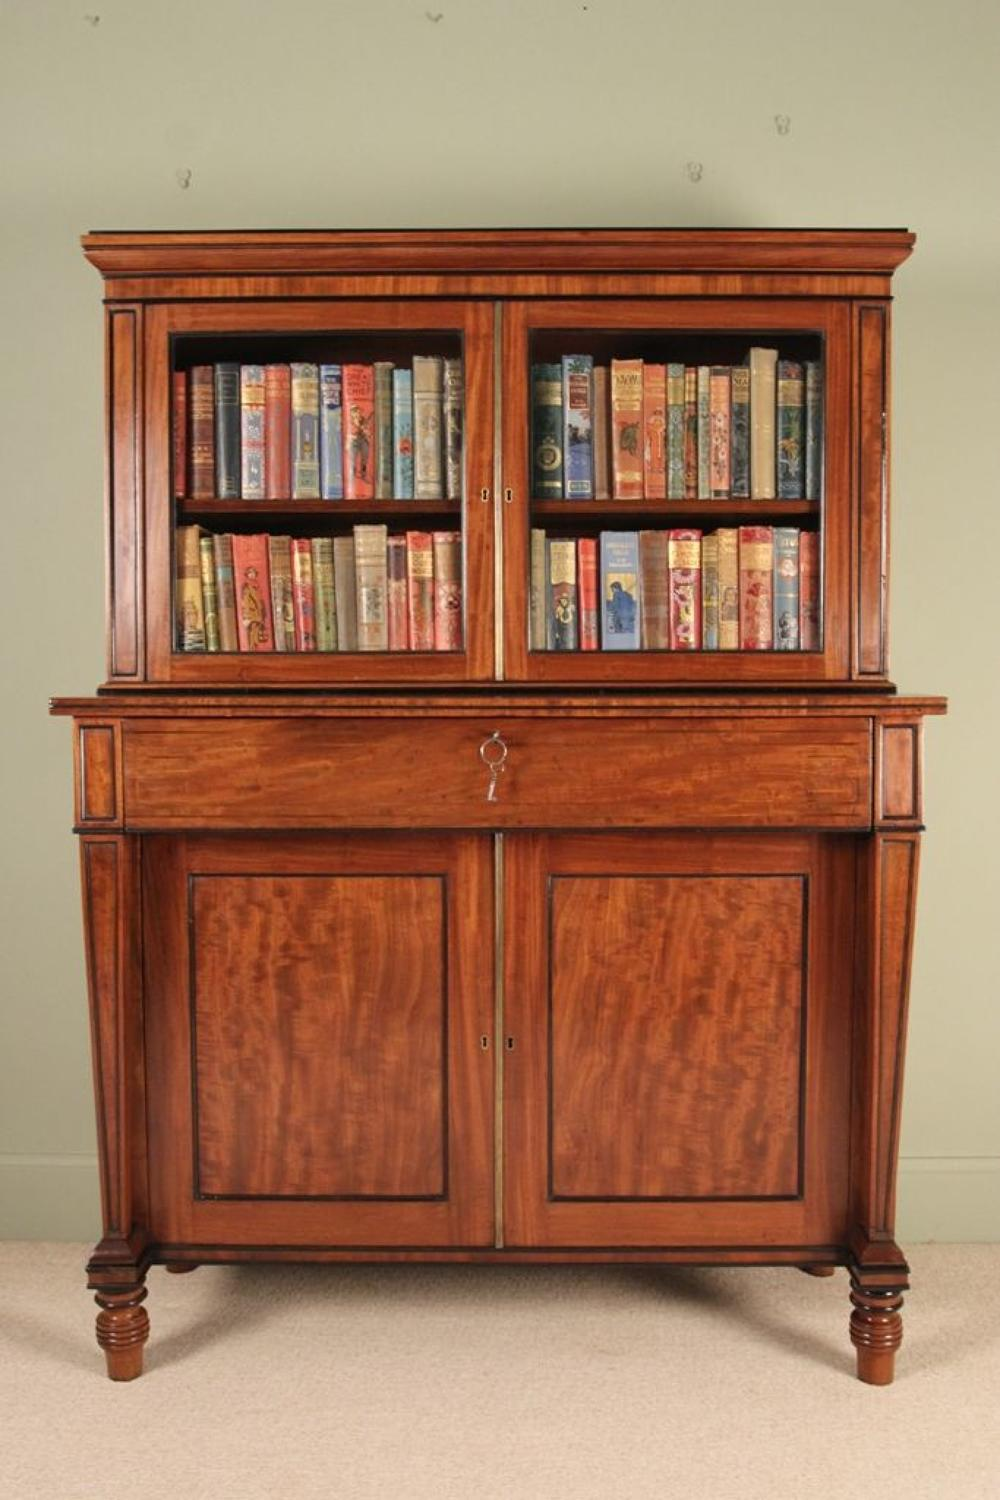 A Regency Mahogany Side Cabinet/Bookcase